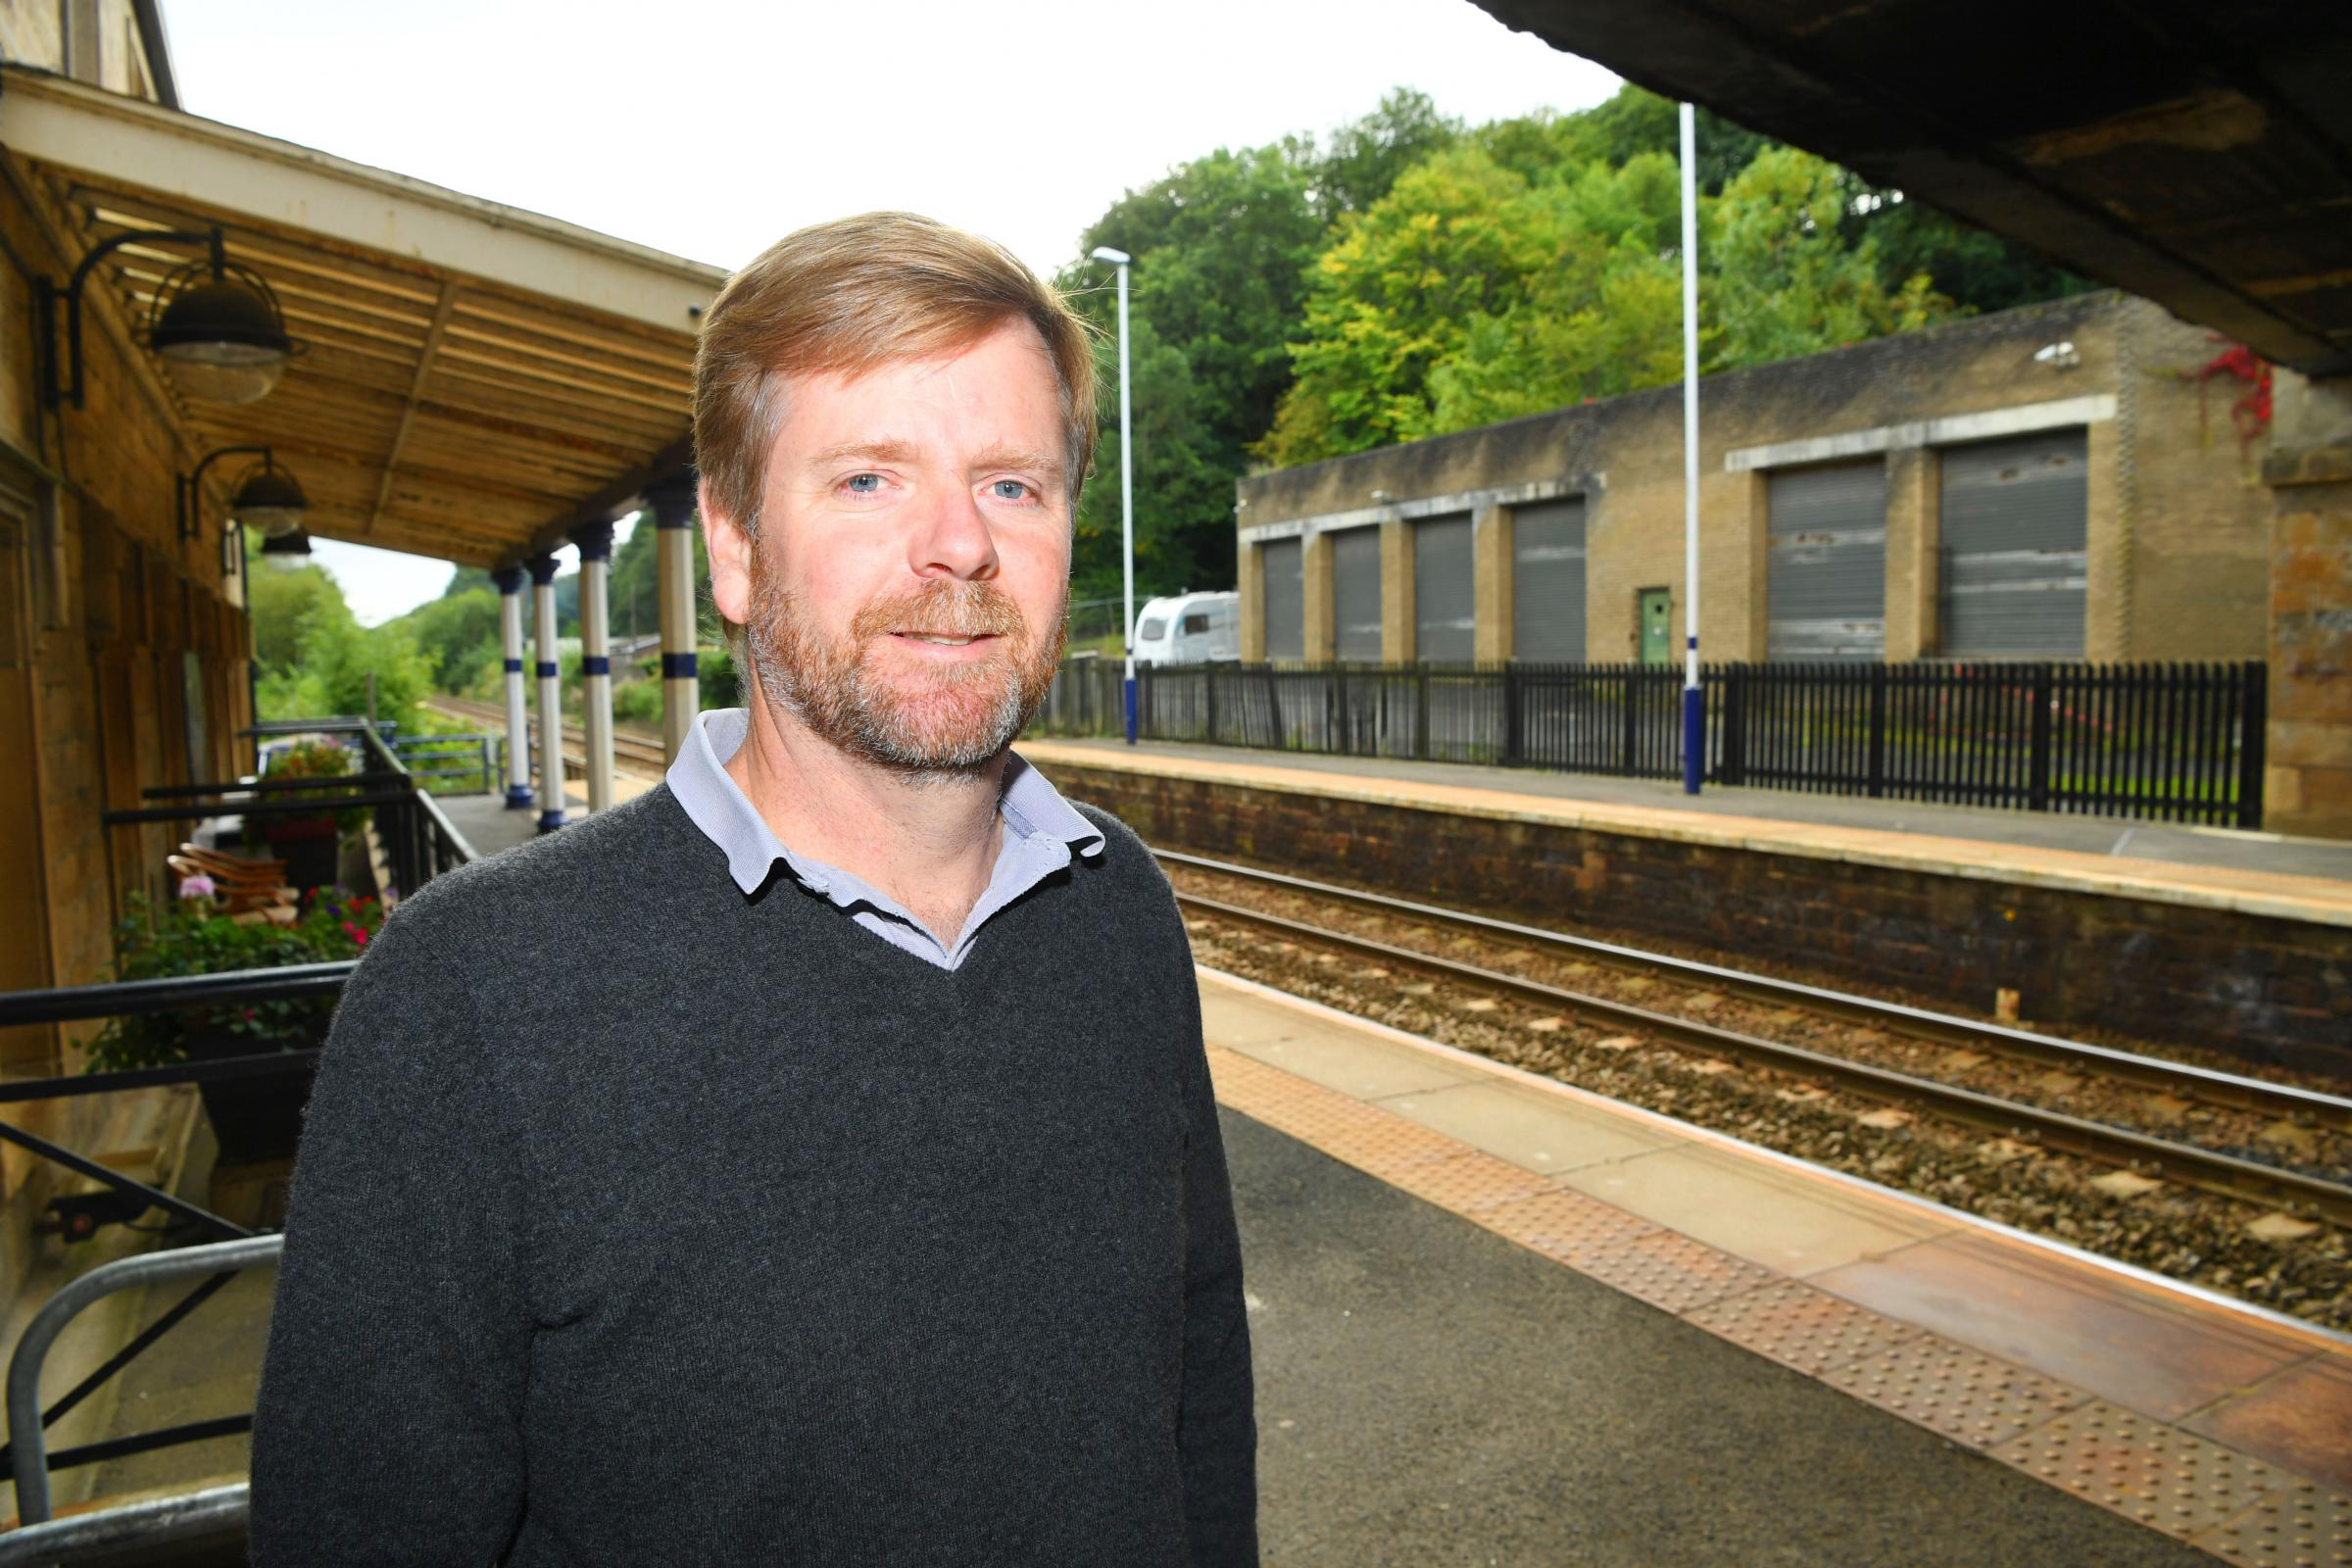 County councillor Nick Oliver at Corbridge Railway Station. HX391833